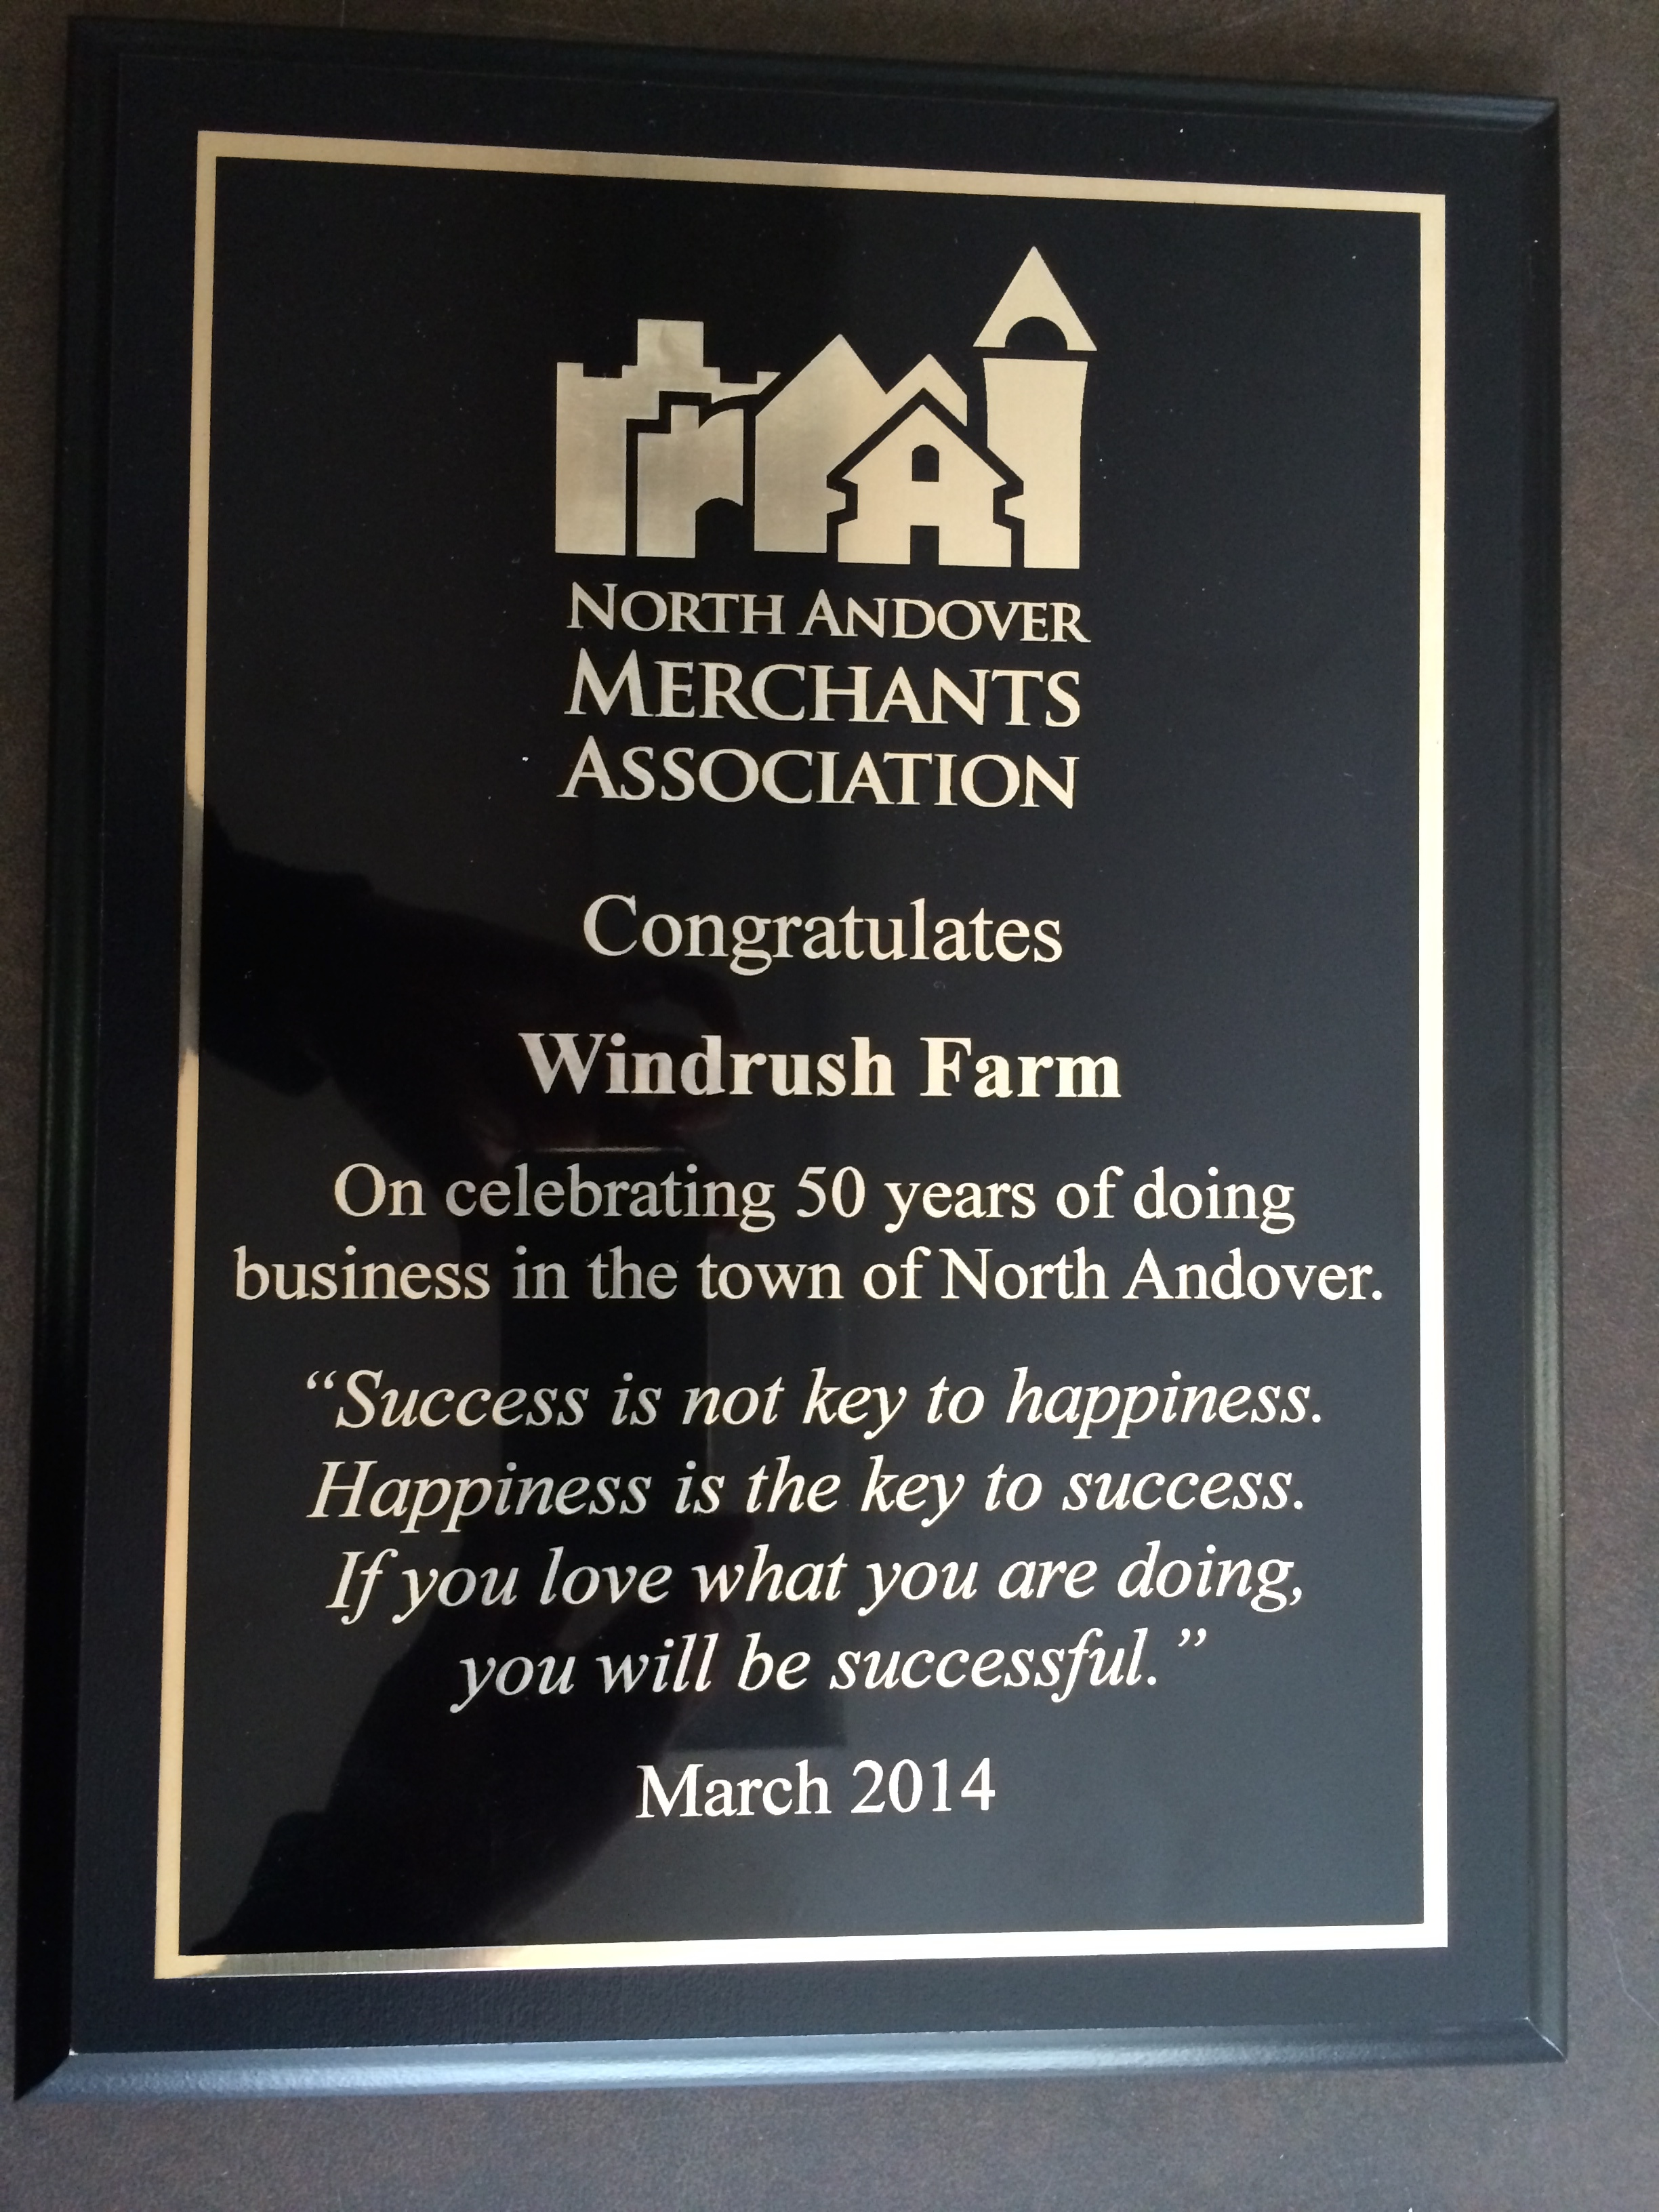 Windrush Honored By North Andover Merchants Association